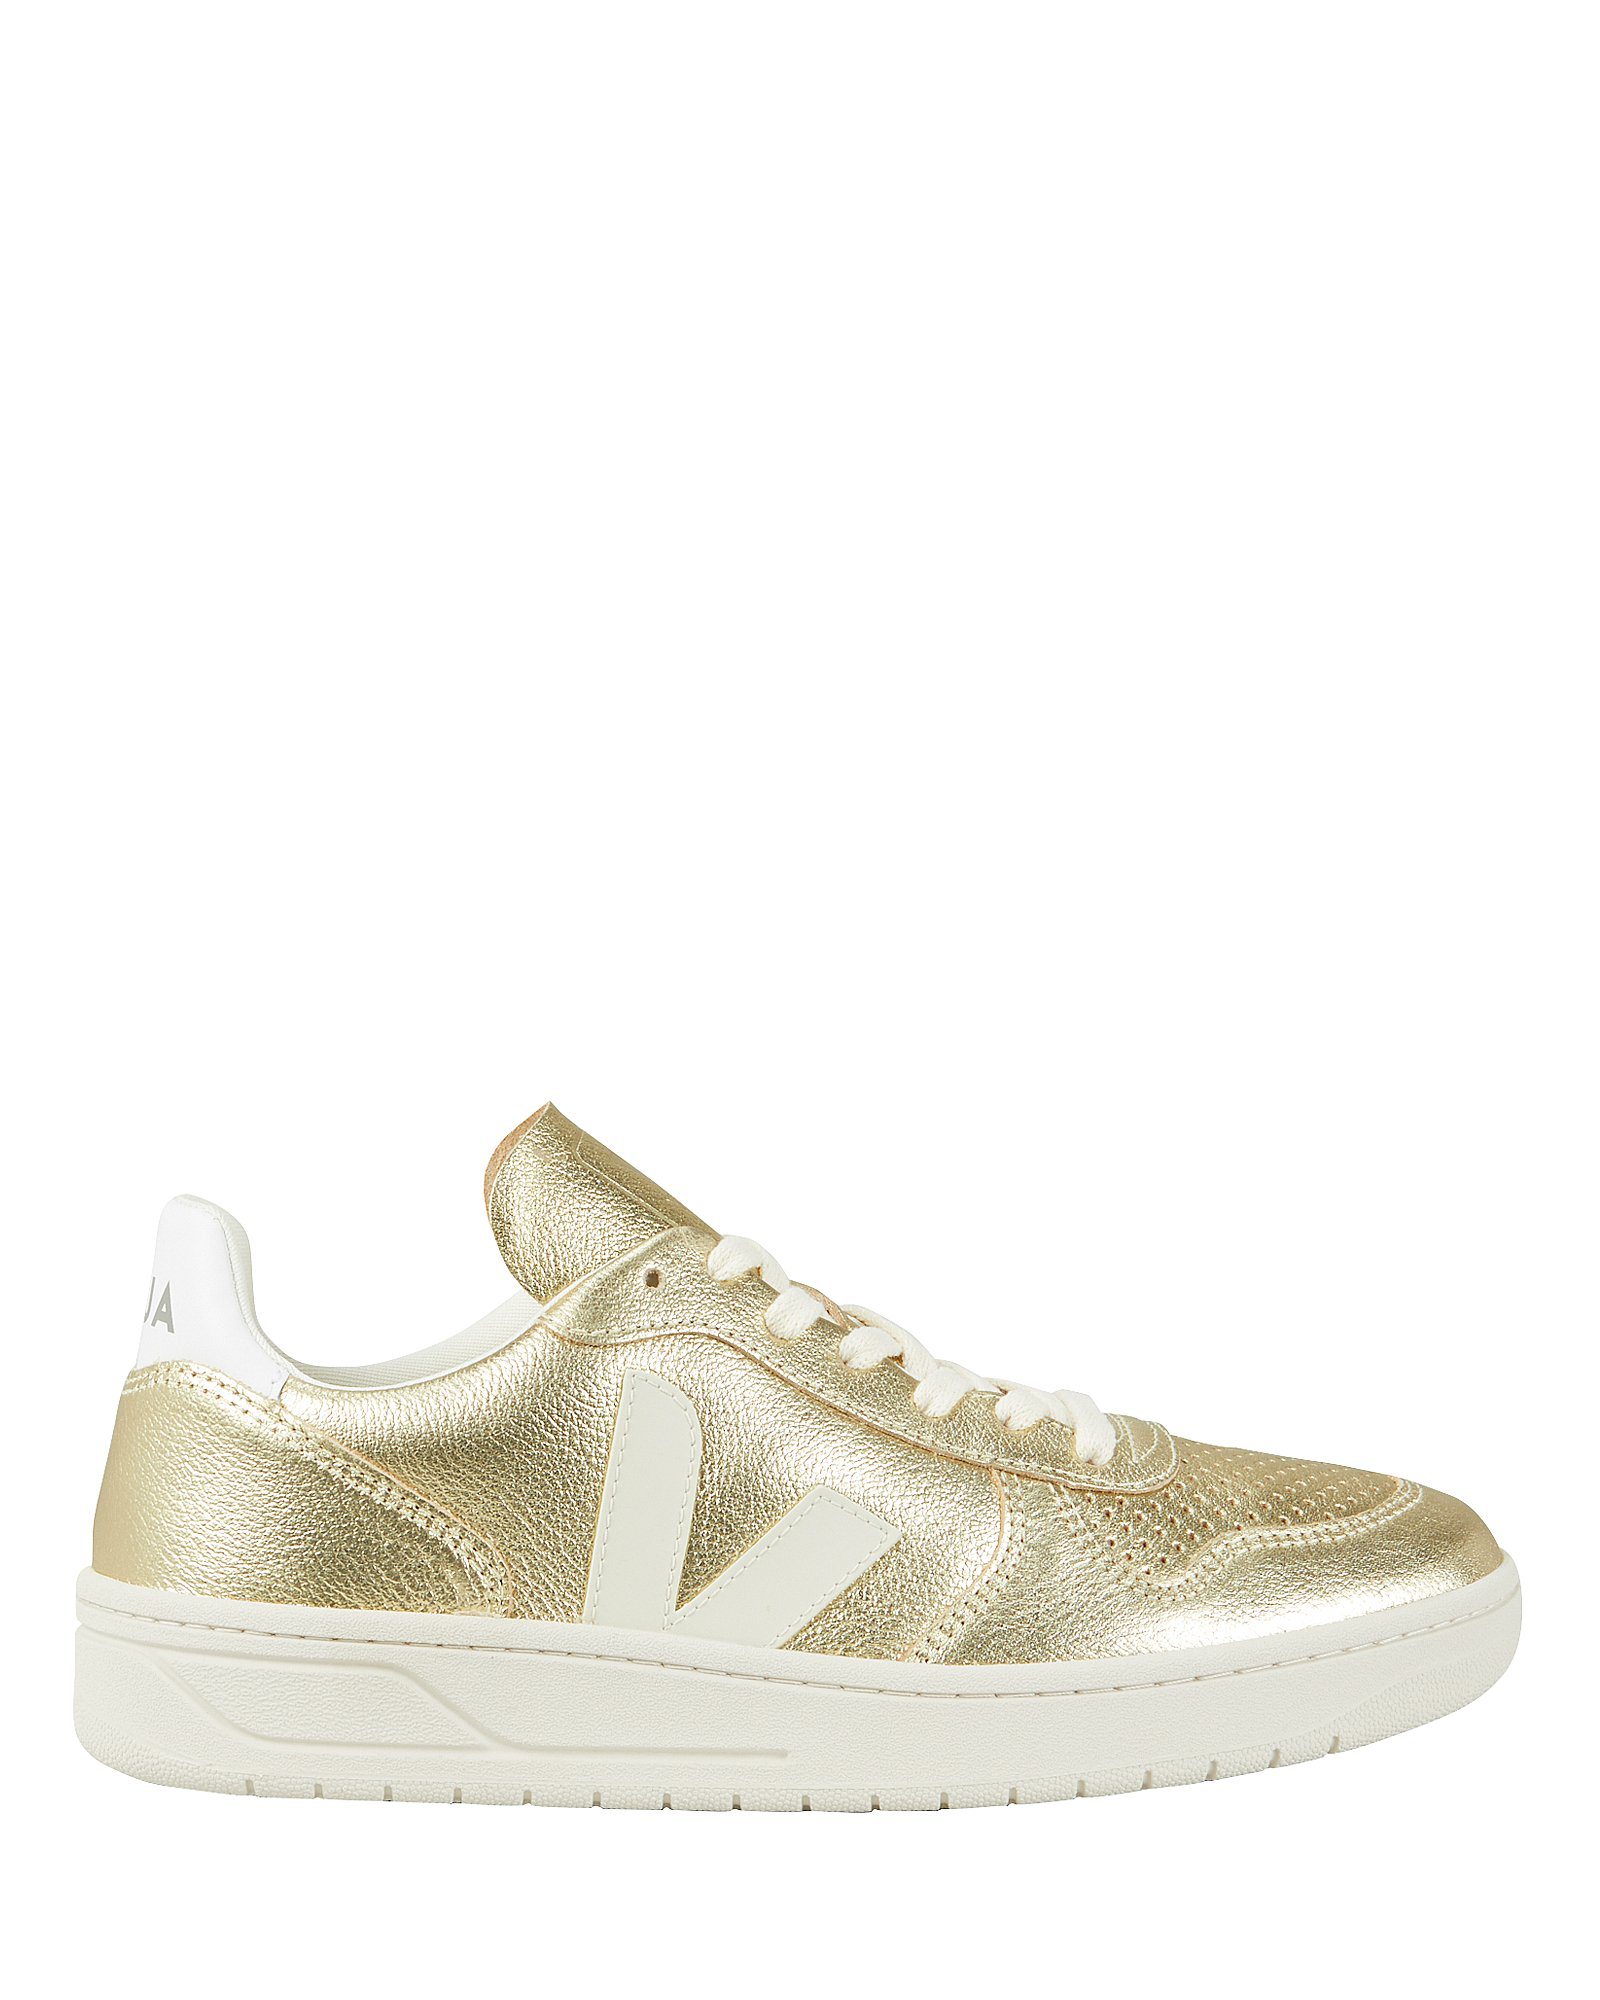 Perforated Low Sneakers 10 Gold Top V LzpSUjGqMV